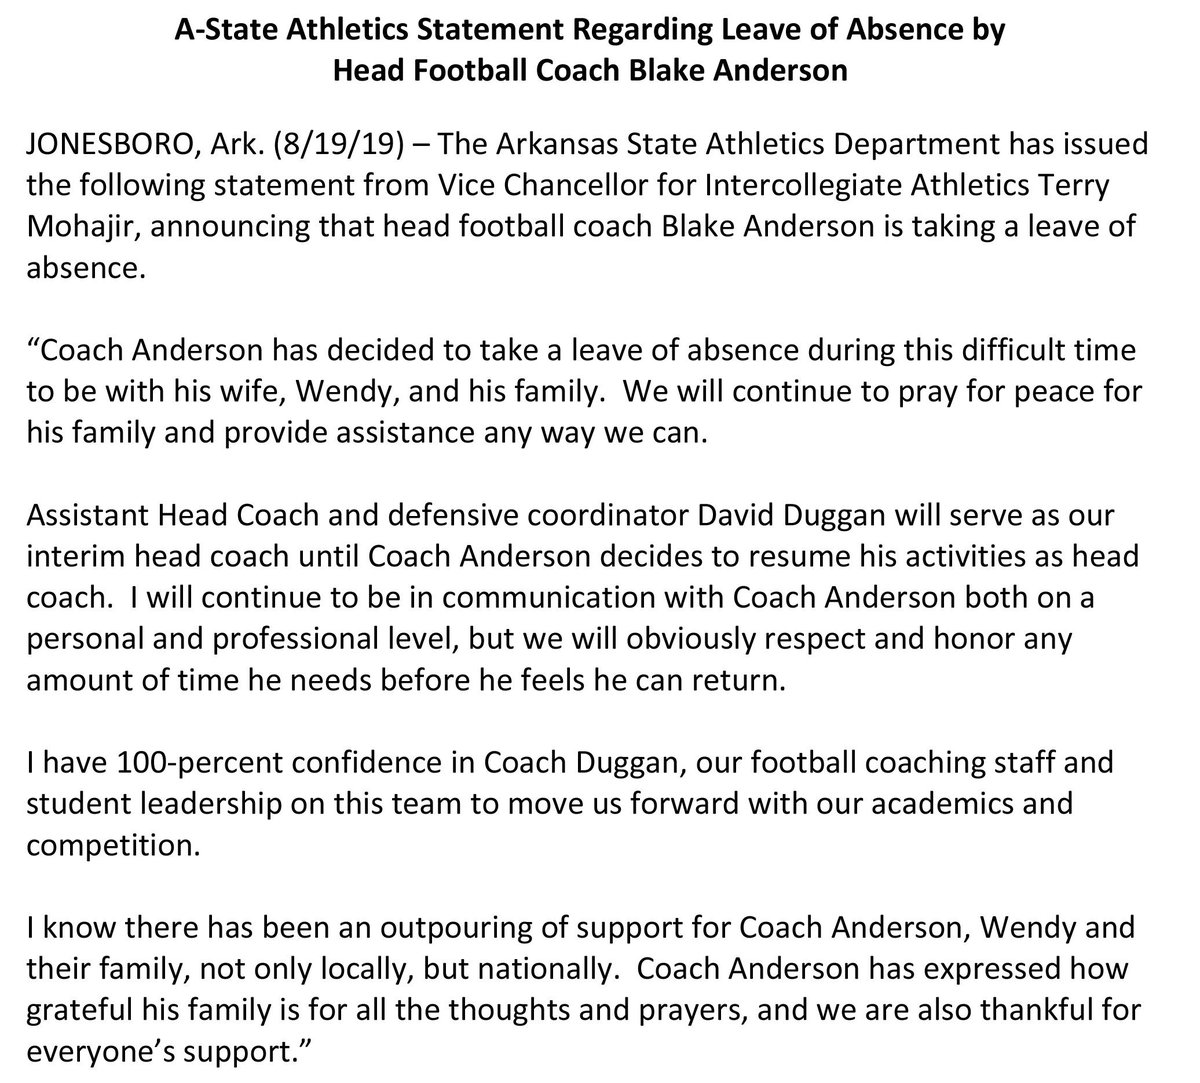 The Arkansas State Athletics Department has issued the following statement from Vice Chancellor for Intercollegiate Athletics Terry Mohajir, announcing that head football coach Blake Anderson is taking a leave of absence.